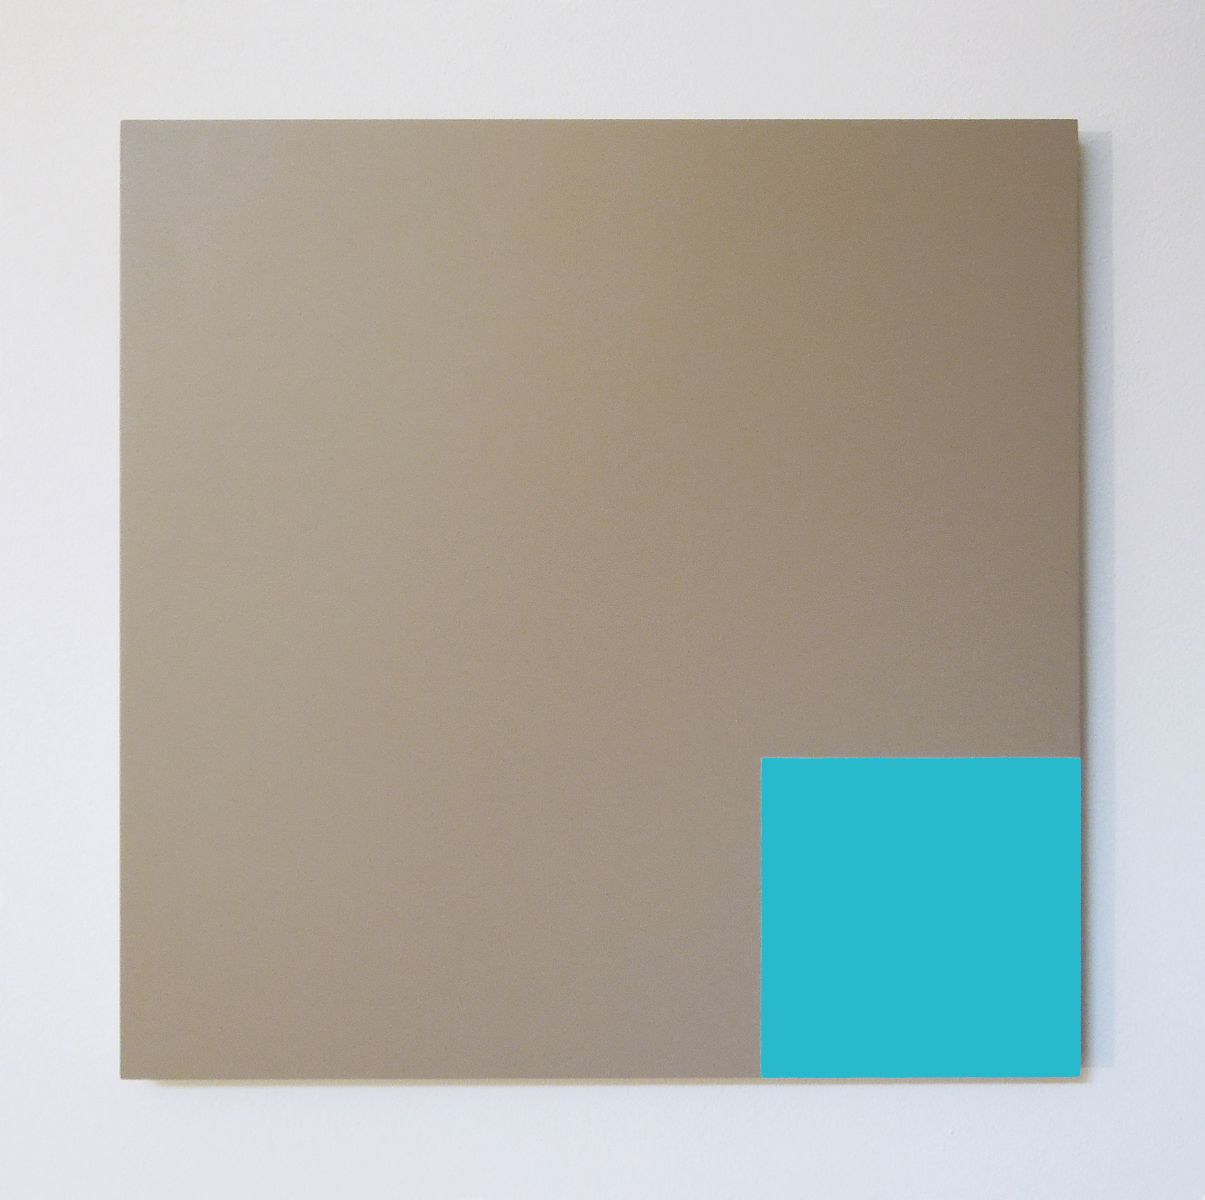 A minimalist taupe square panel with a turquoise square painted in one corner.